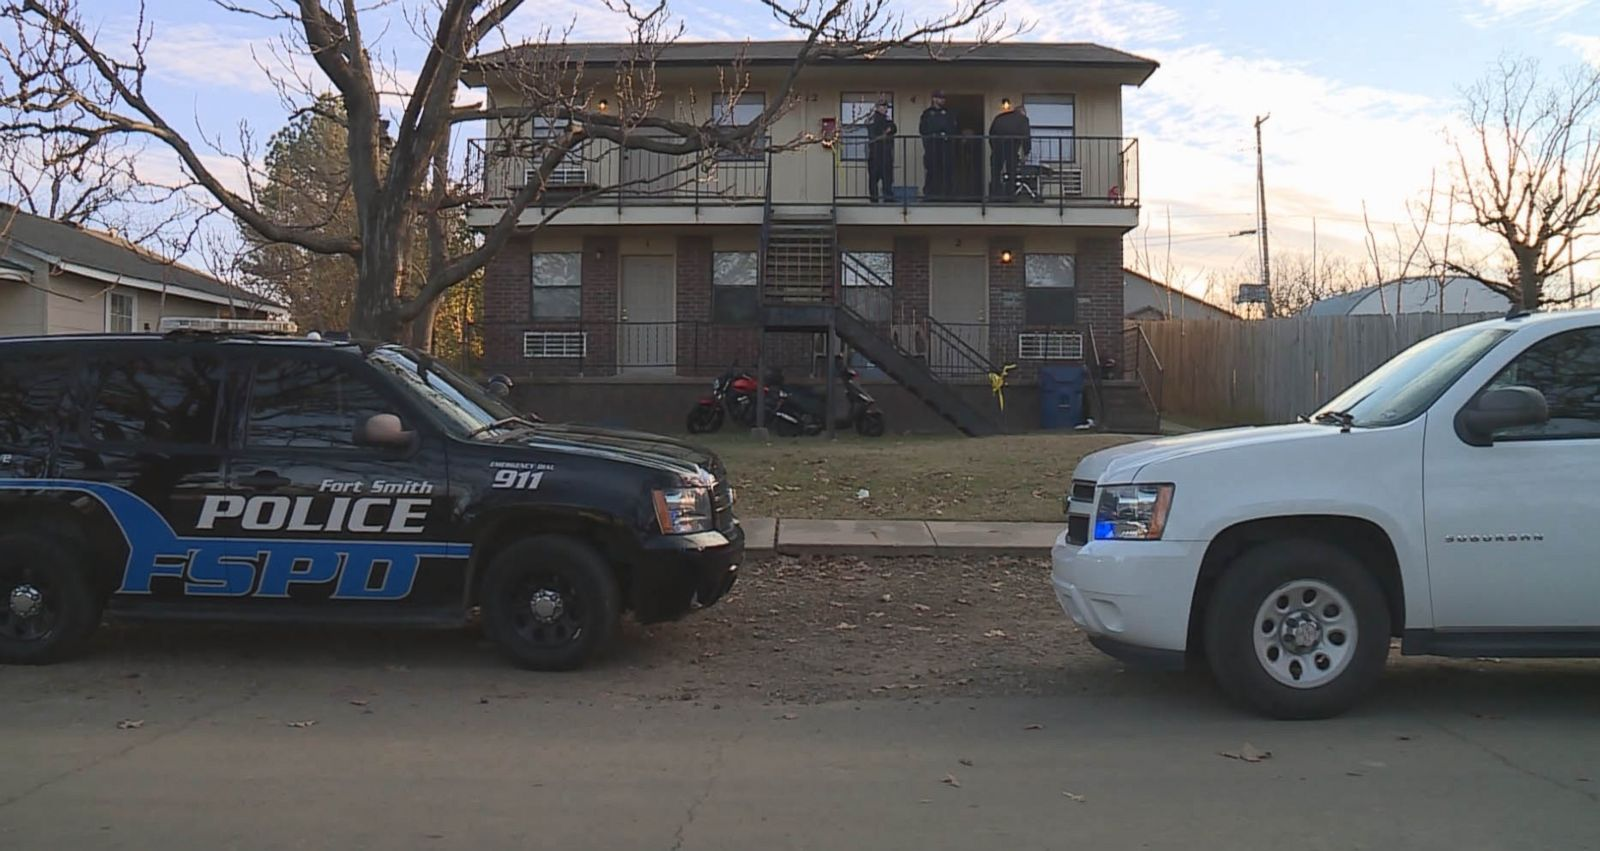 Pregnant woman who killed intruder in justified shooting now faces